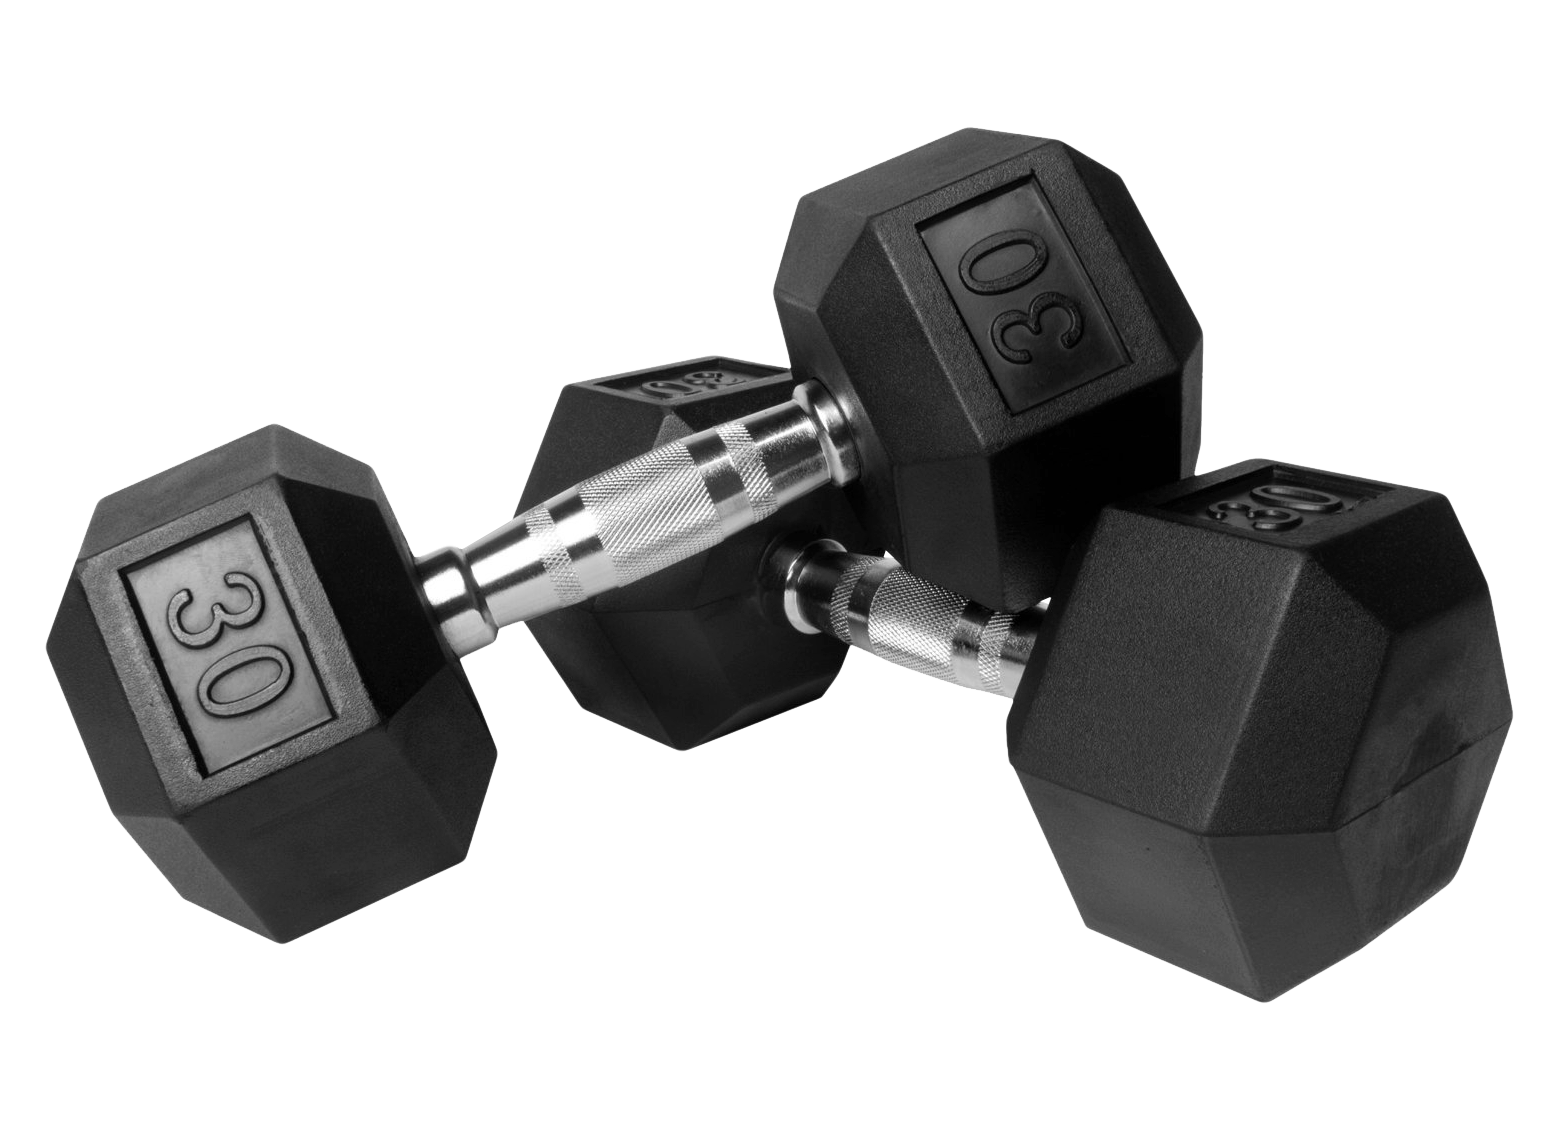 Dumbbell hantel png image. Weight clipart gym instrument